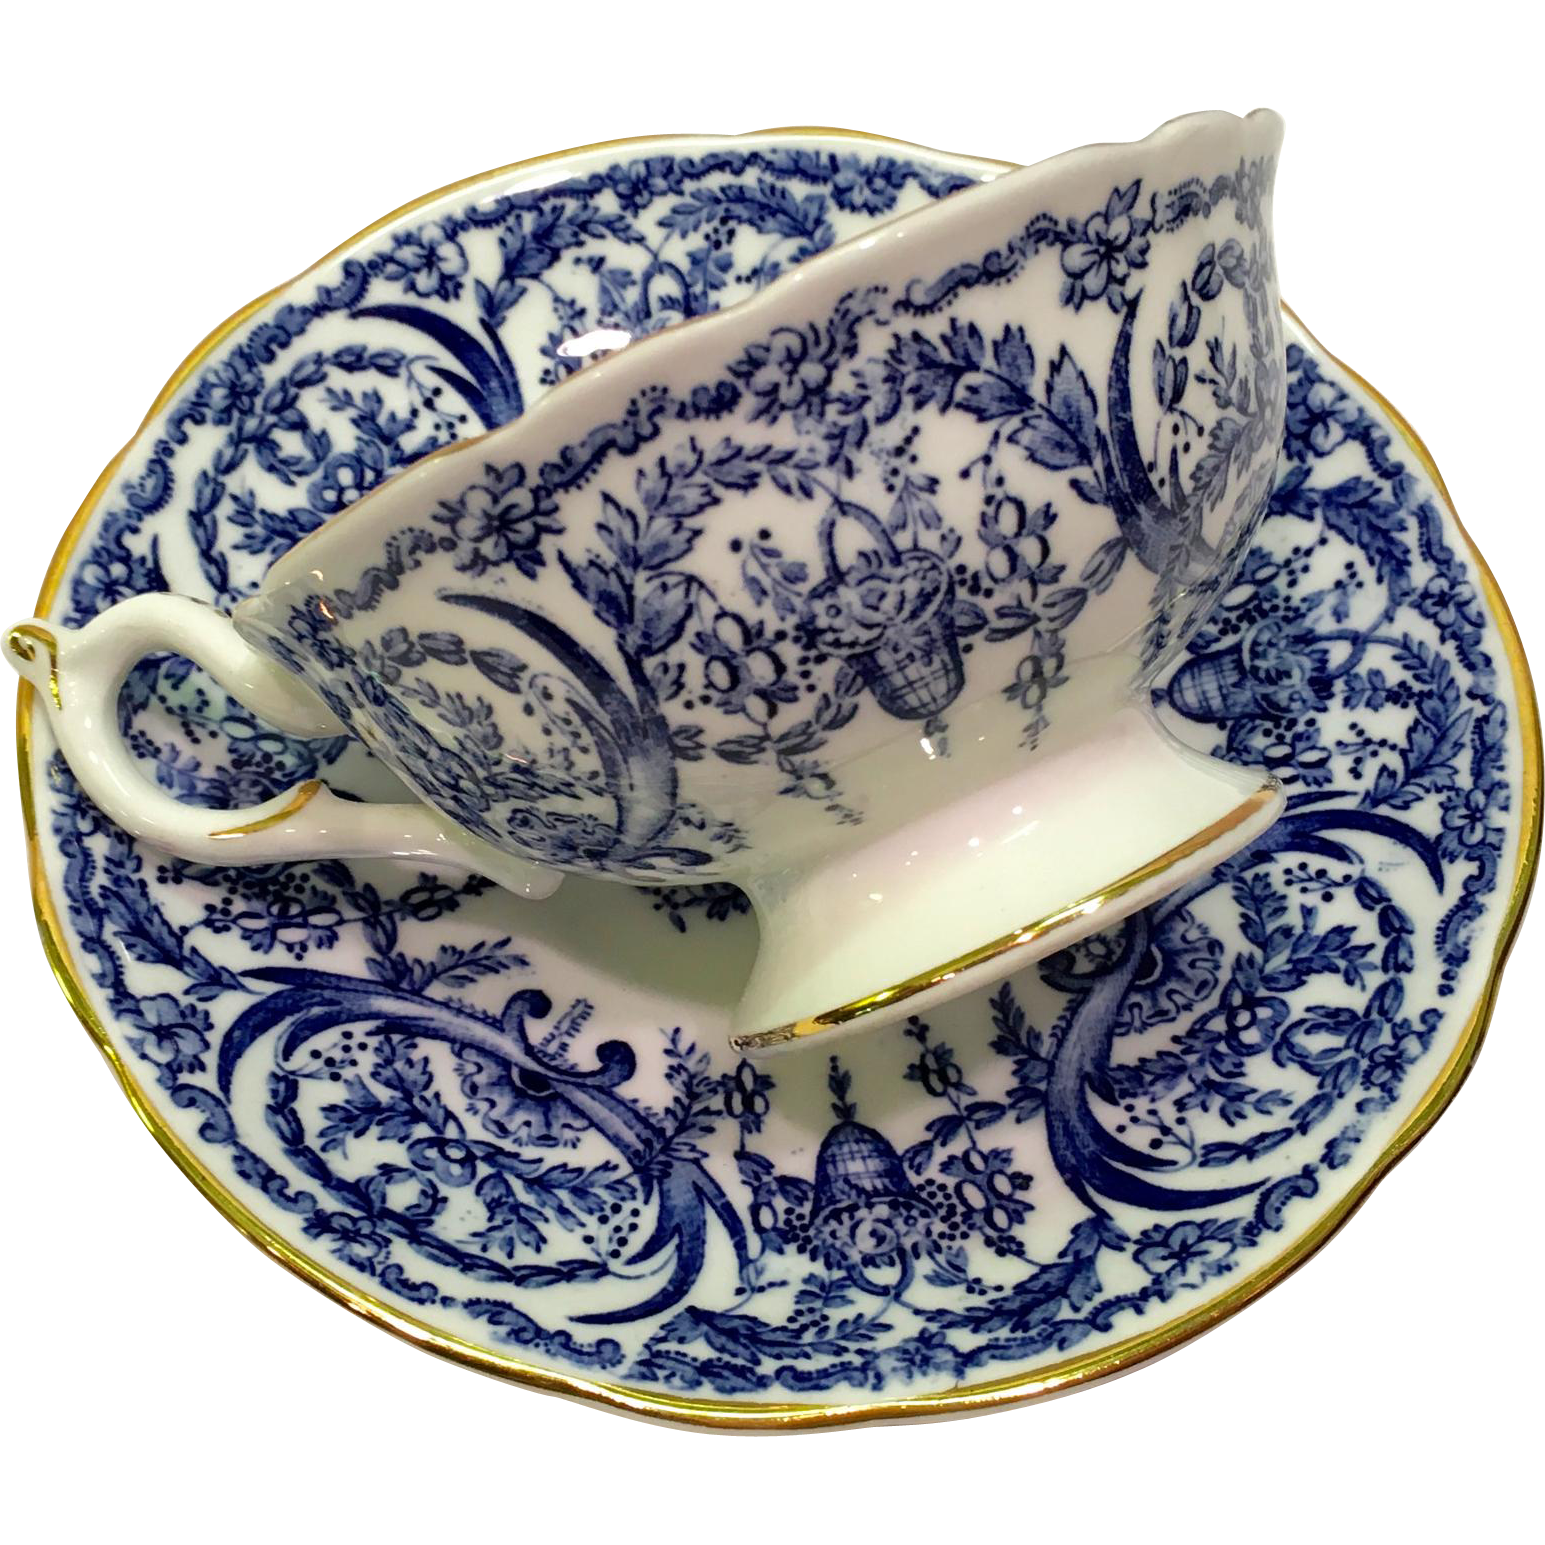 This Cobalt Blue and White Coalport Bone China Basket and Garland #5012F Teacup and Saucer is simply exquisite! The intriguing floral and basket